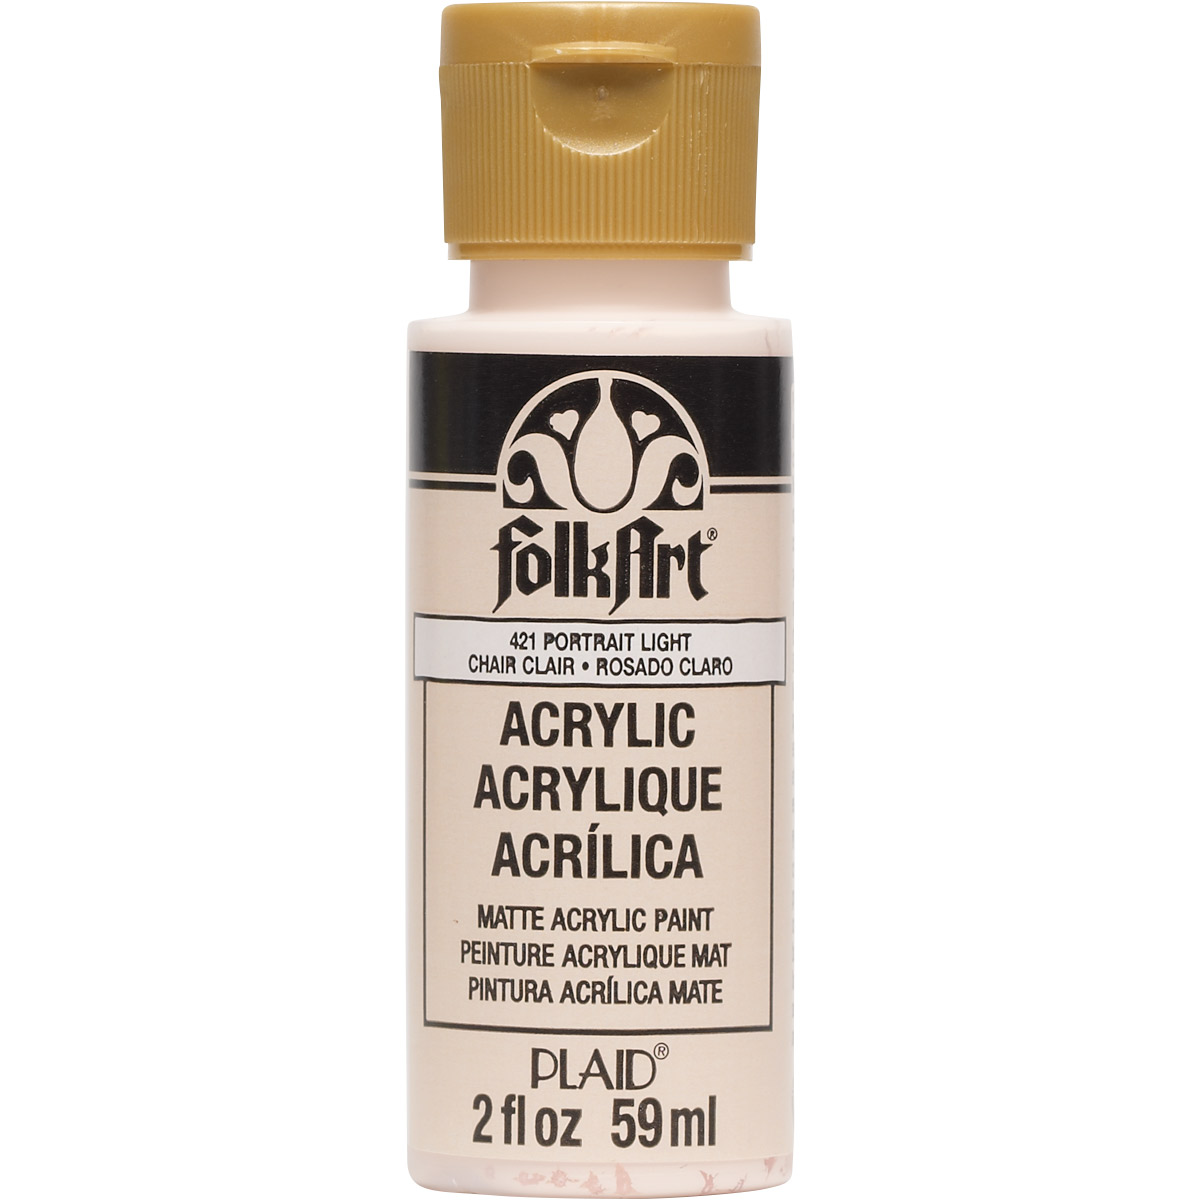 FolkArt ® Acrylic Colors - Portrait Light, 2 oz. - 421